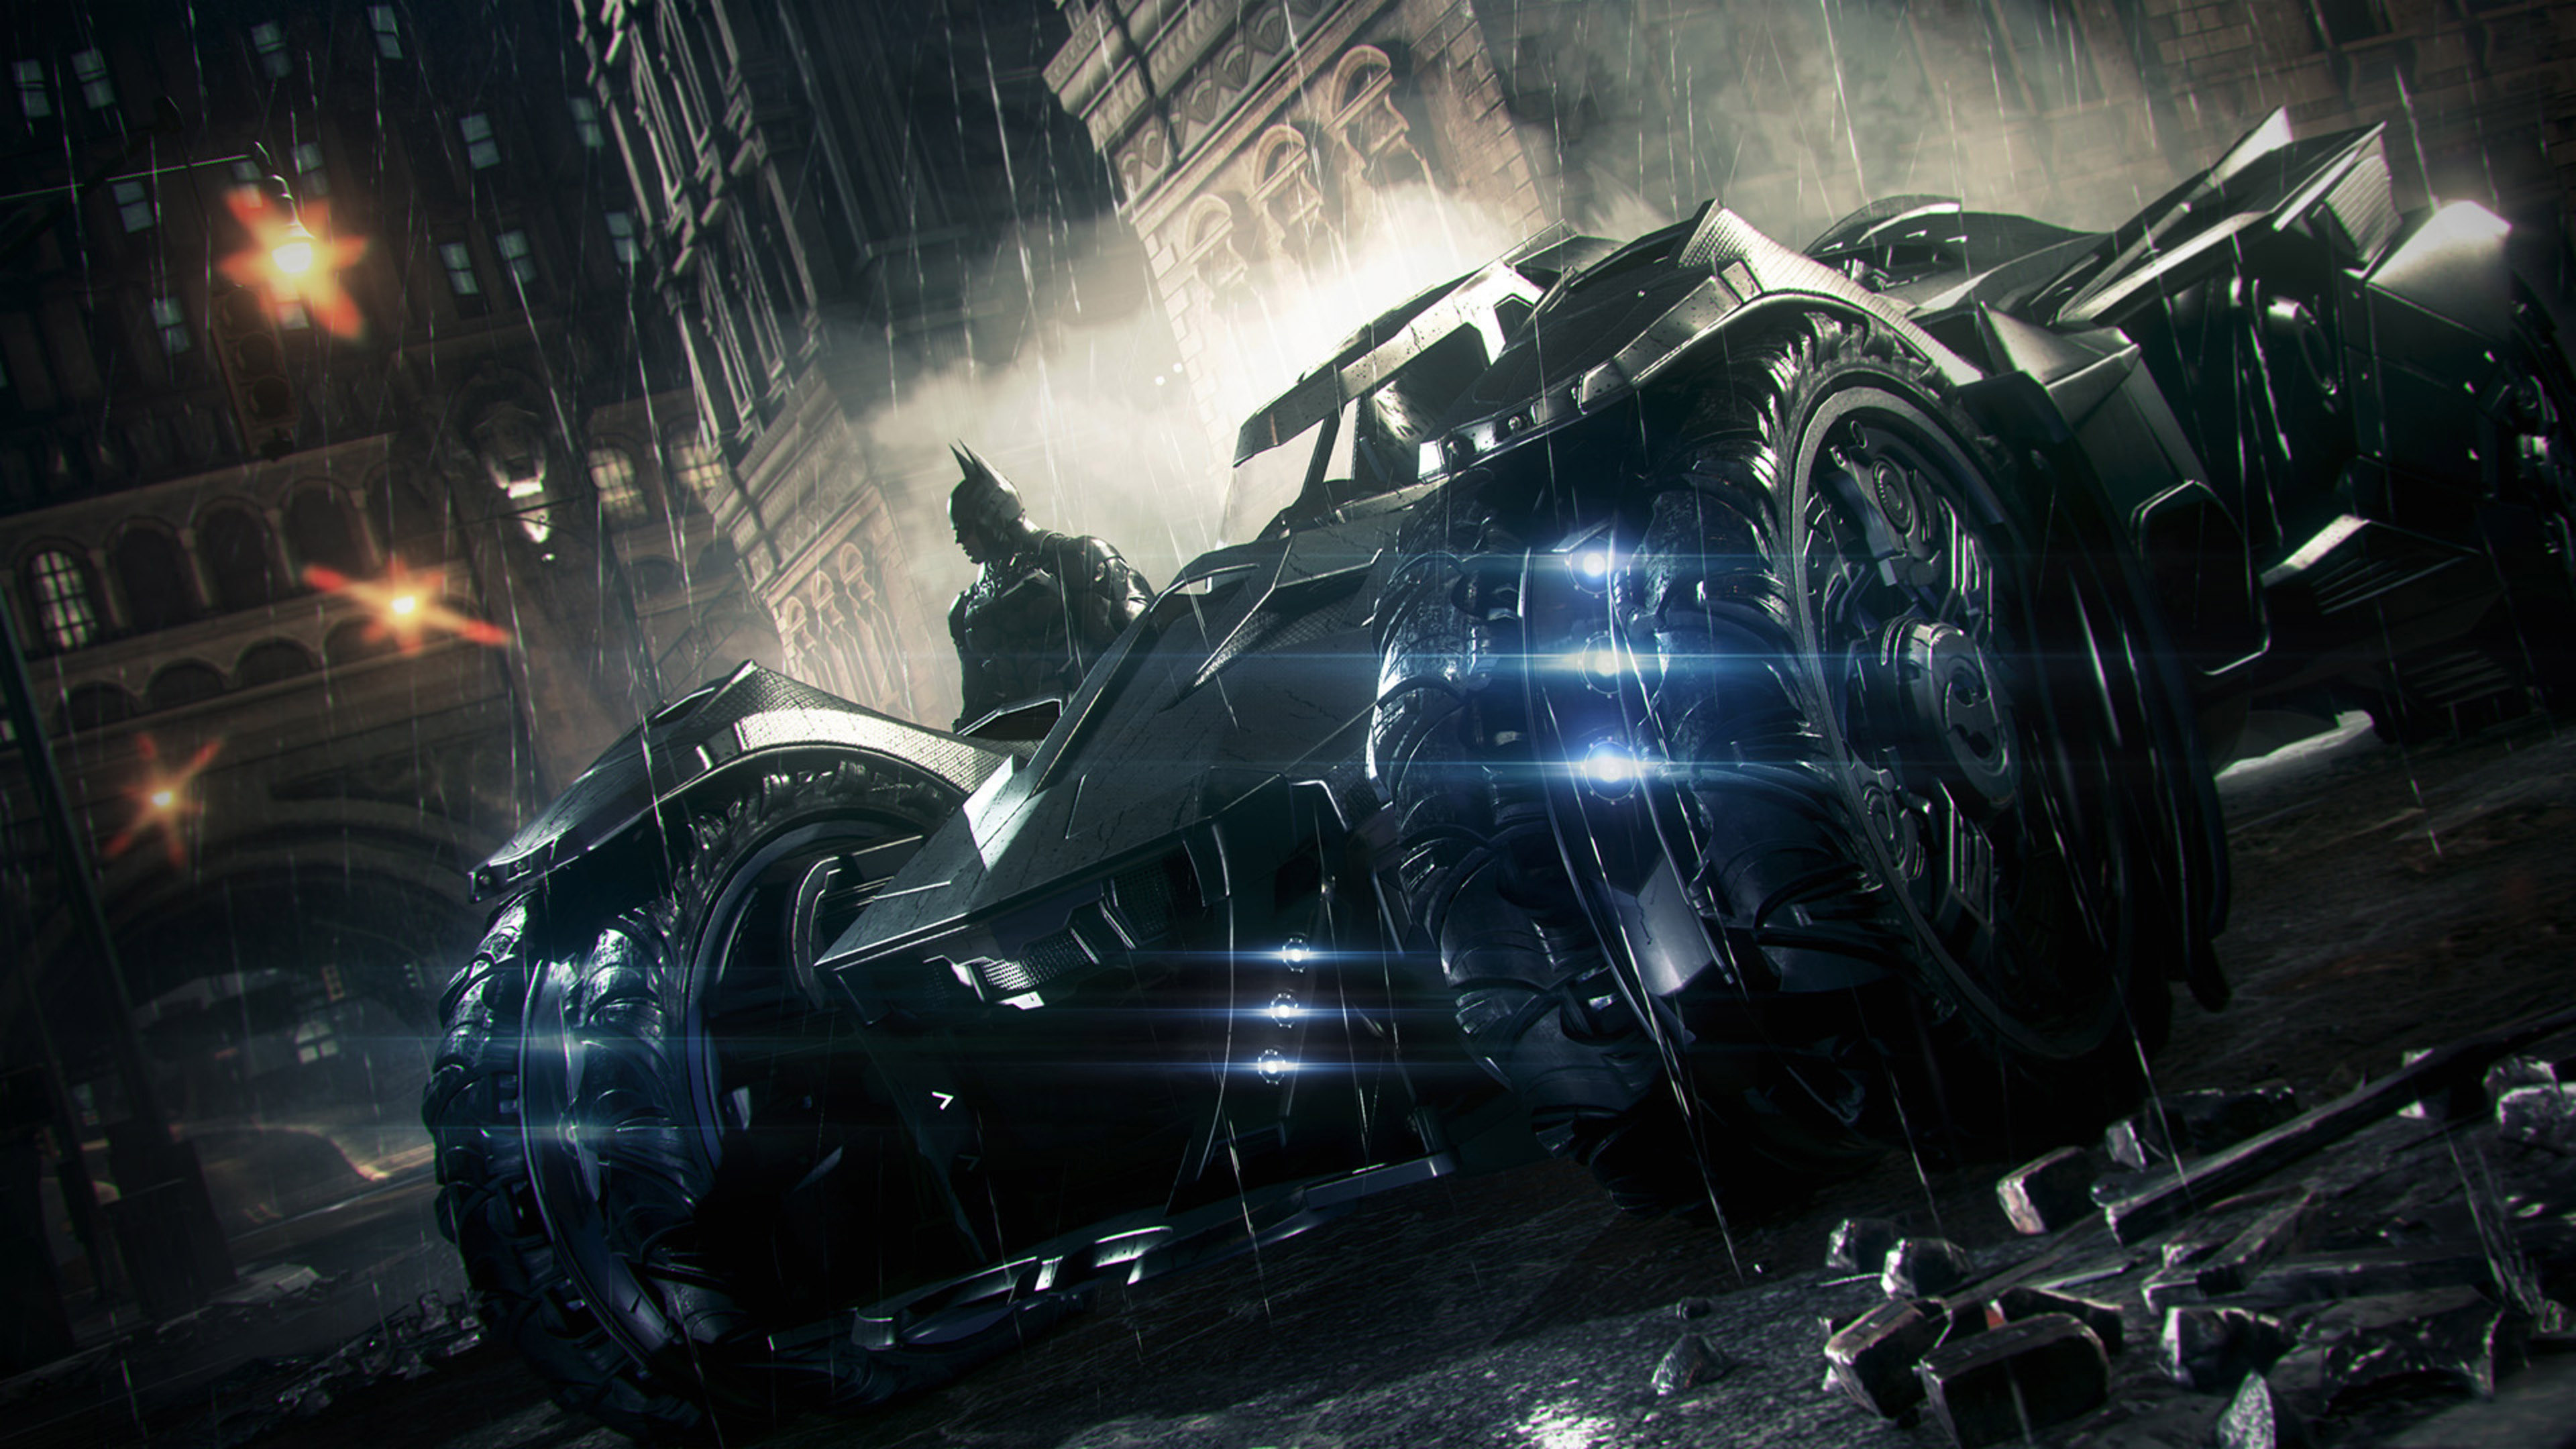 Exclusive 2014 Batmobile Batman Arkham Knight HD Wallpapers 3840x2160